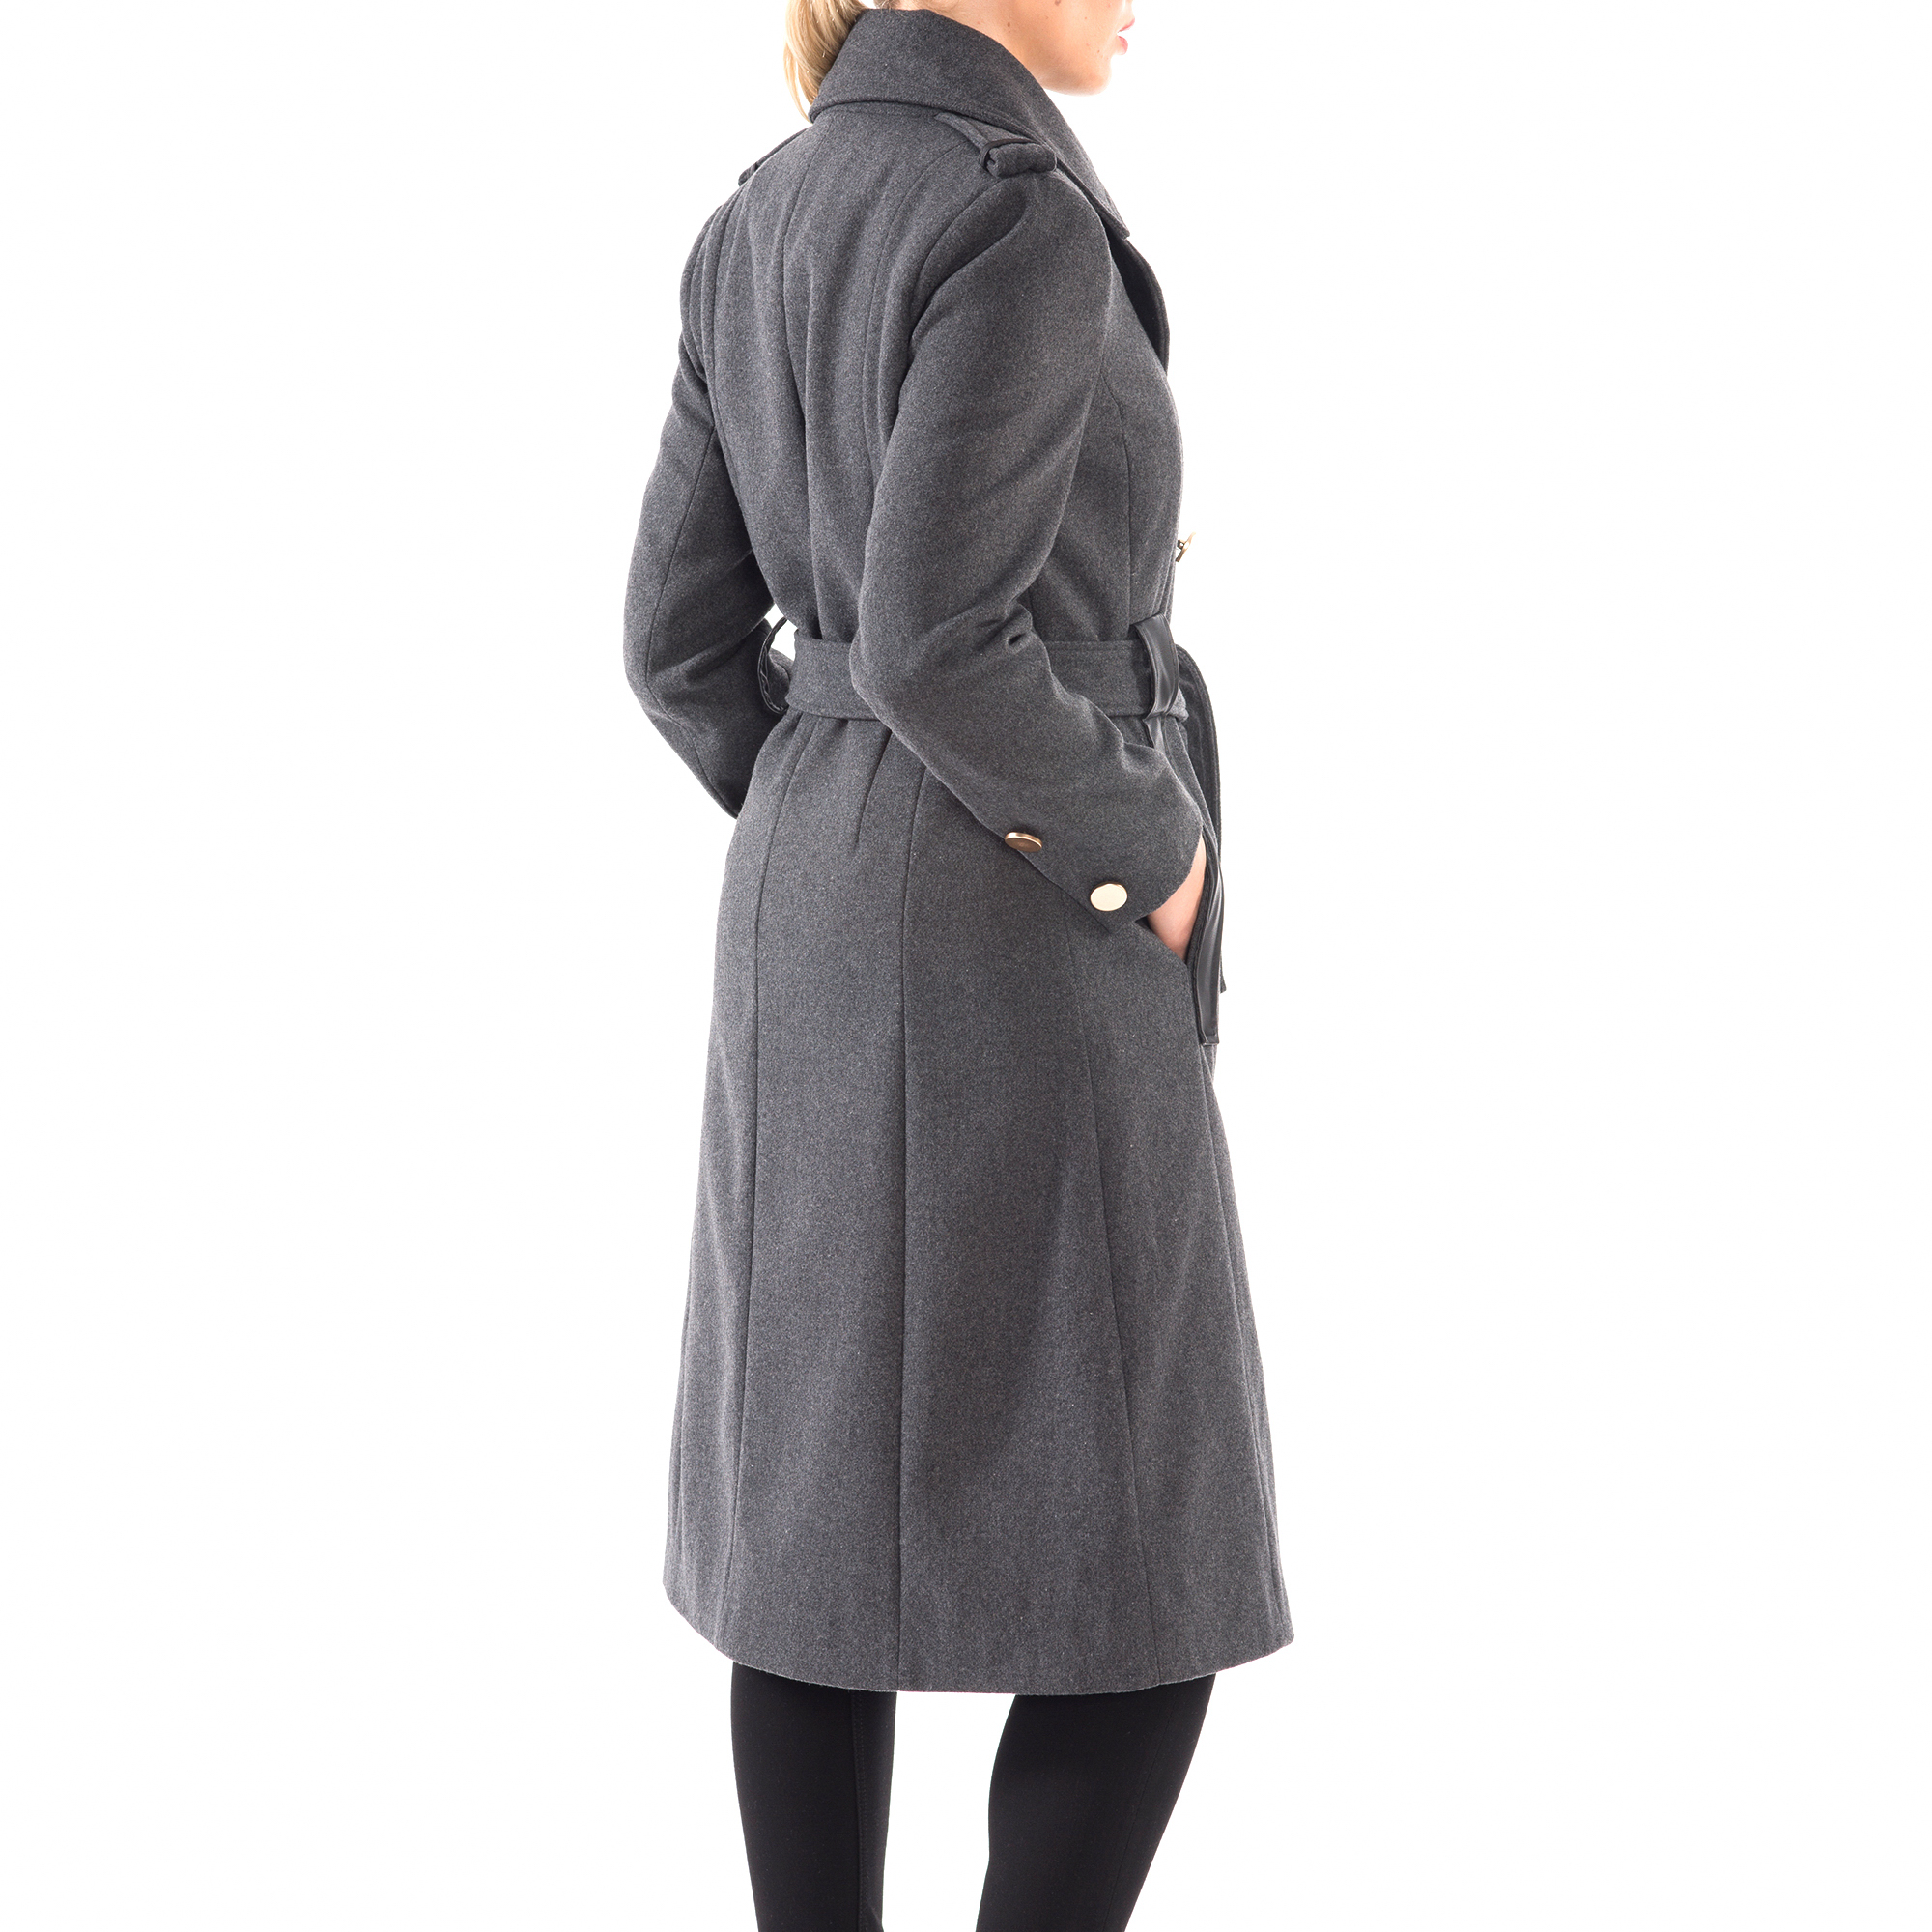 Alpine-Swiss-Womens-Wool-Blend-Double-Breasted-Belted-Trench-Coat-Long-Jacket